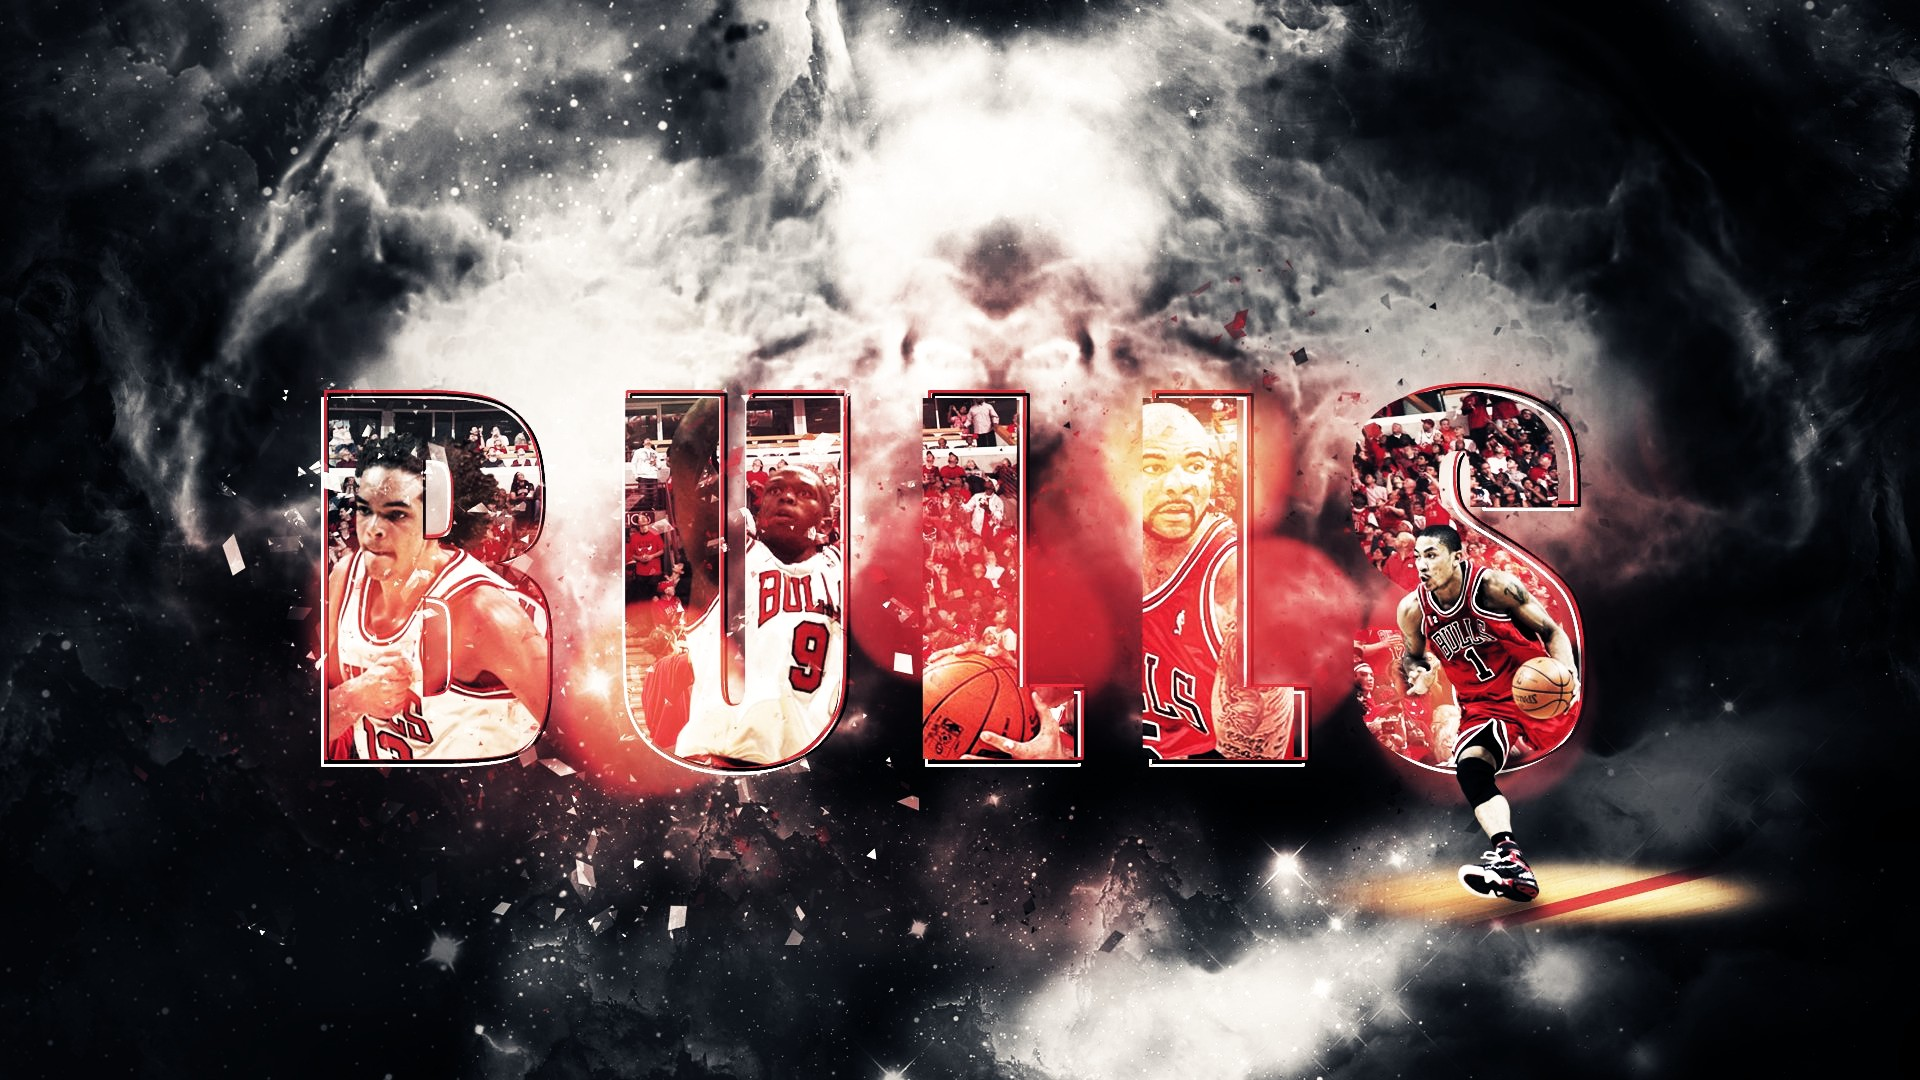 Chicago Bulls Wallpapers HD 4K